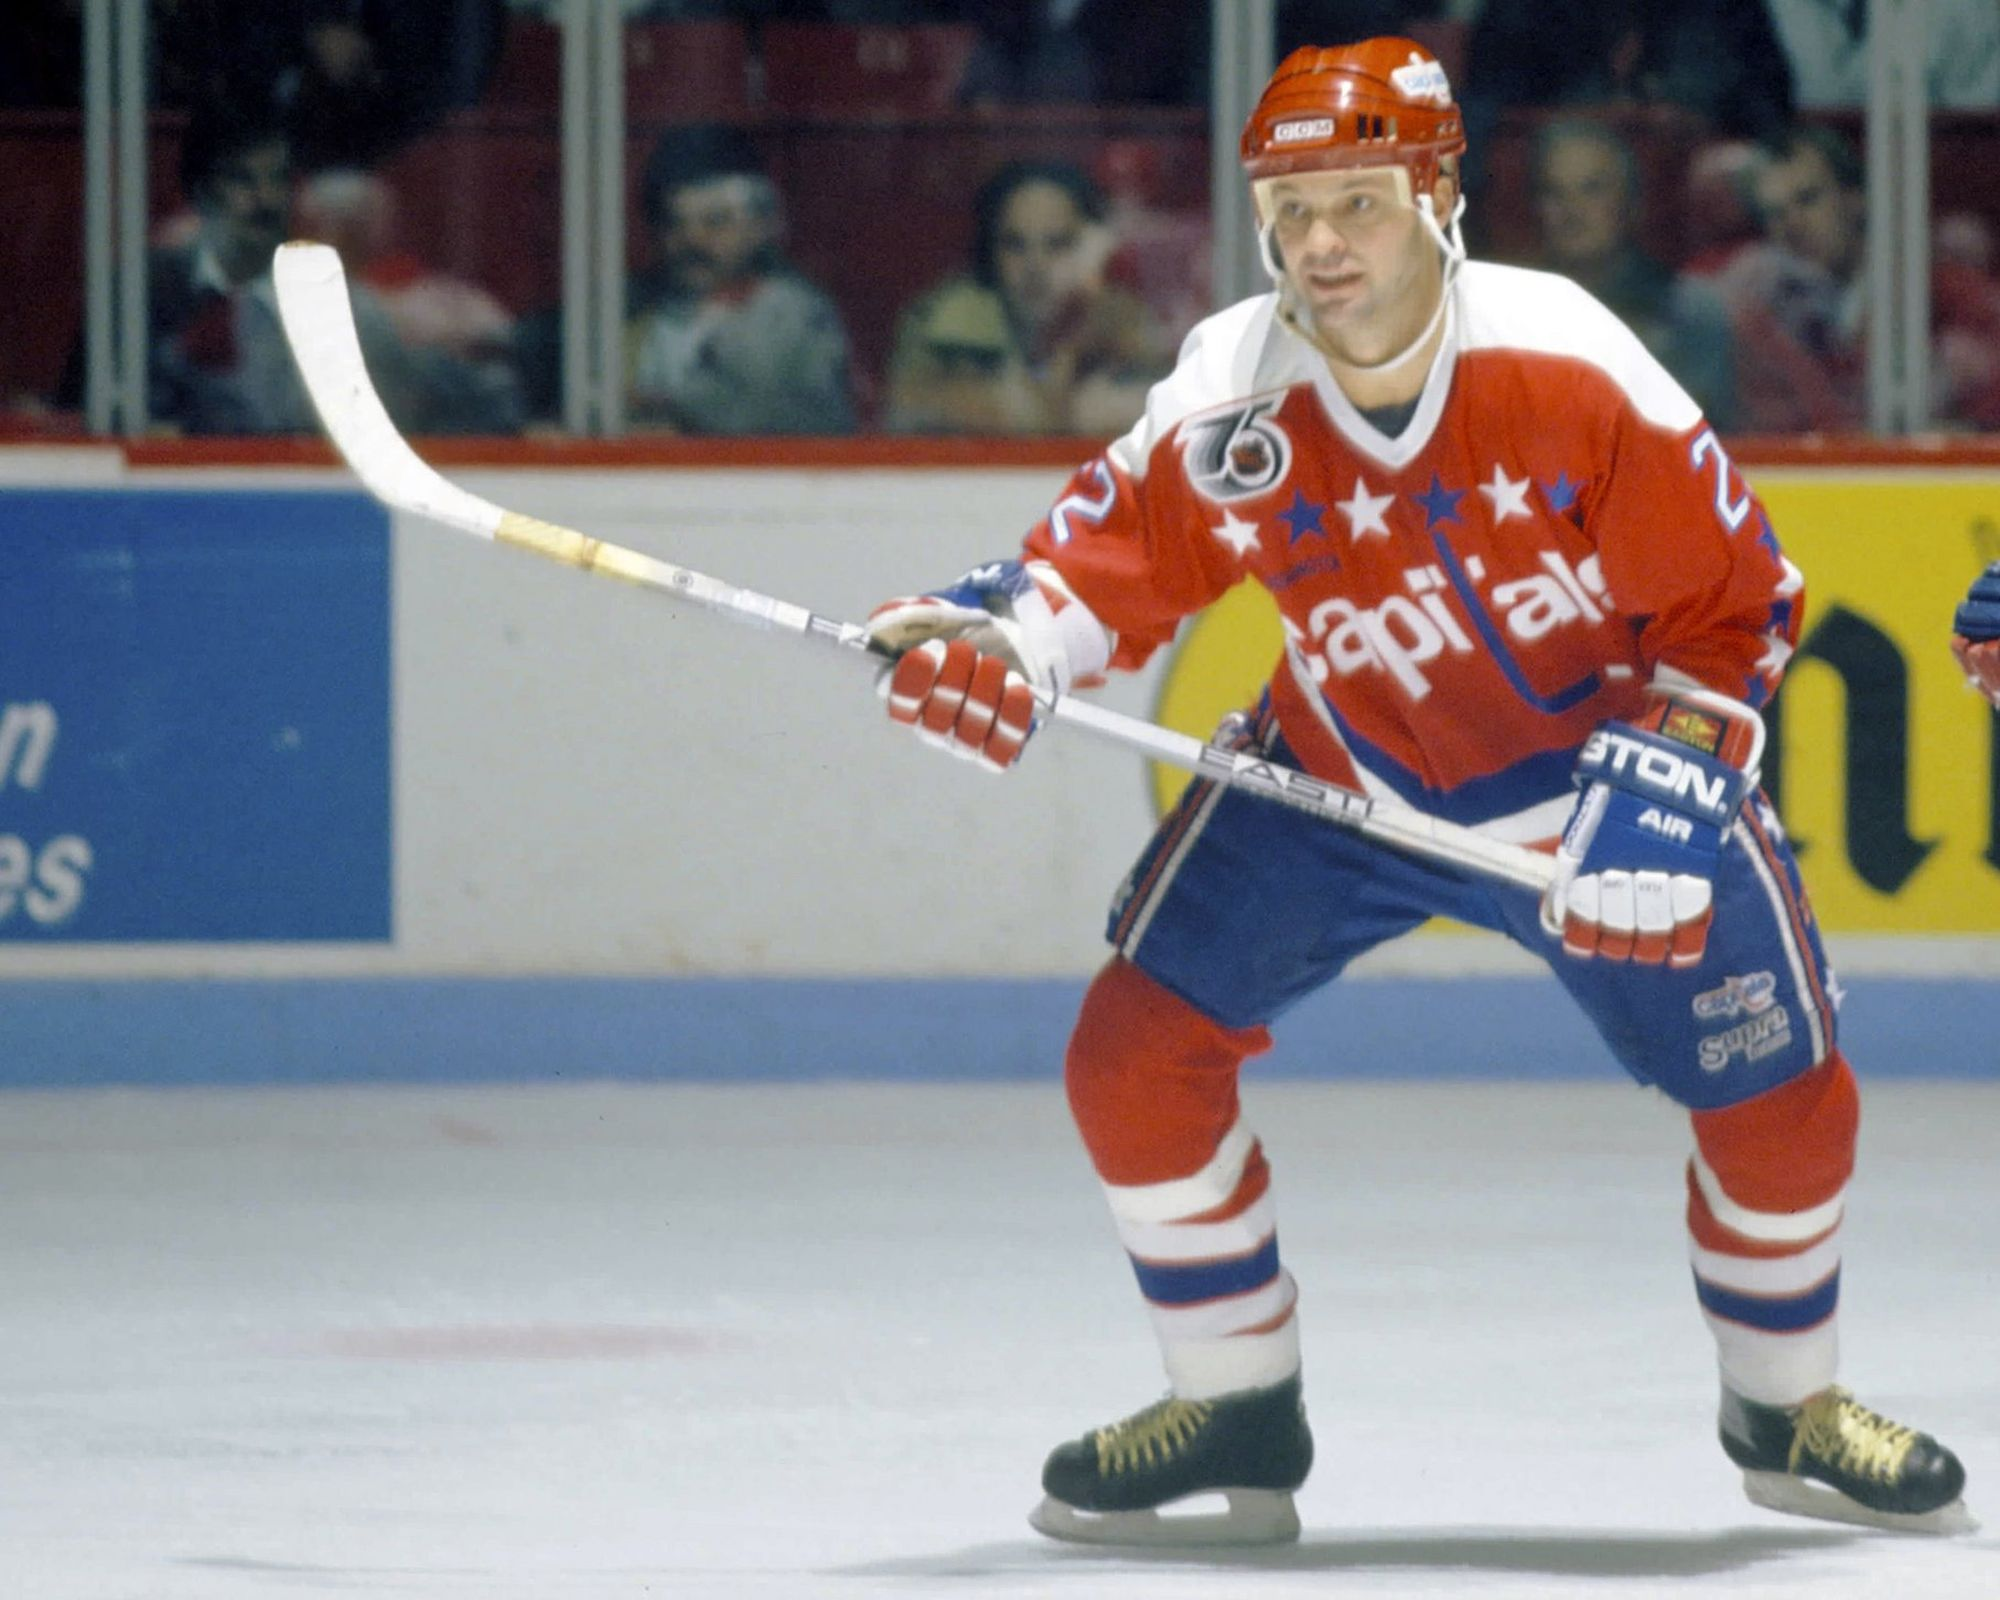 Ea Shop #caps40th: Dino Ciccarelli Tribute 2/25/15 | Monumental